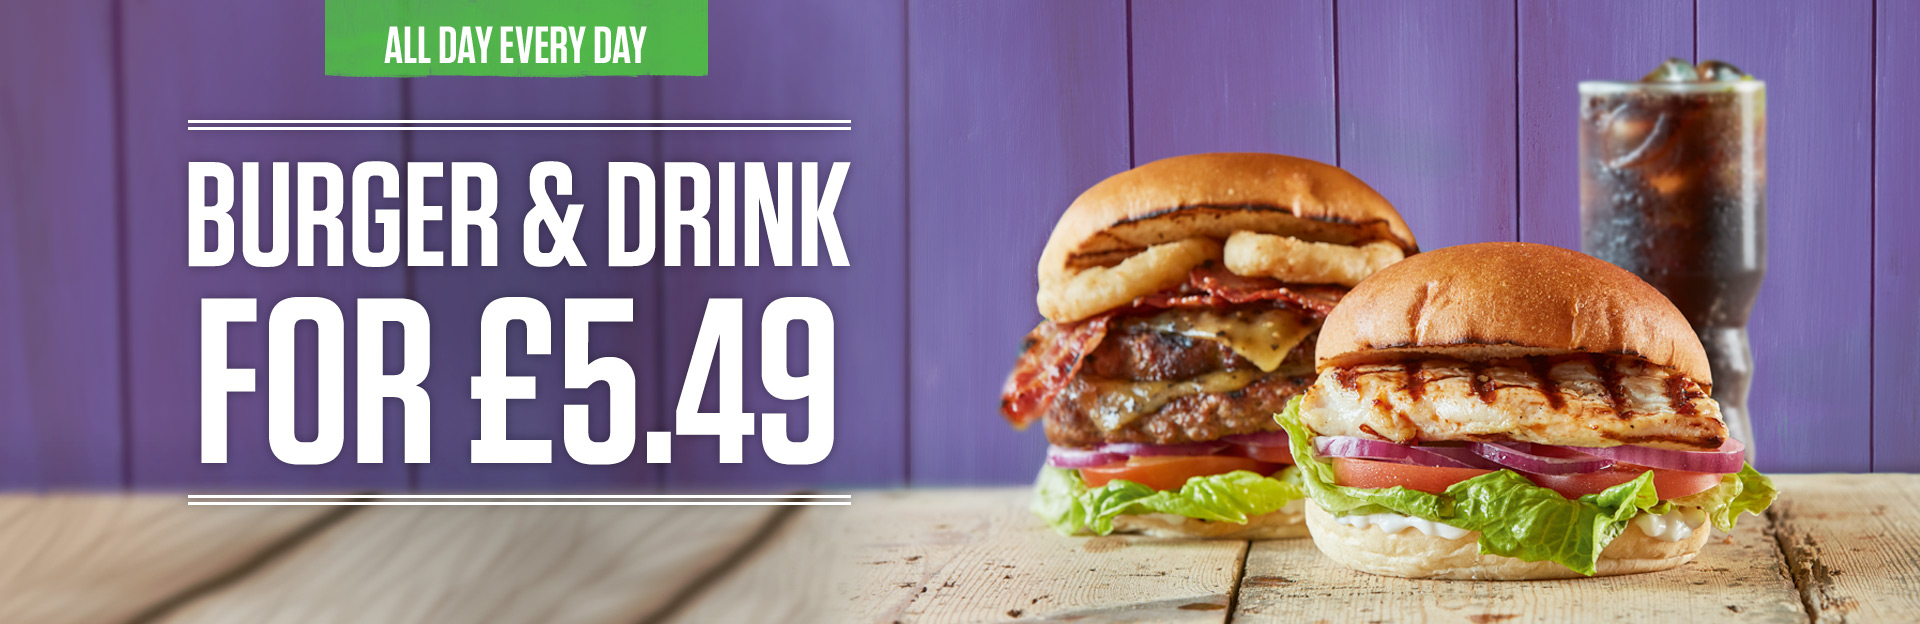 Burger and Drink Deal at The Stone House